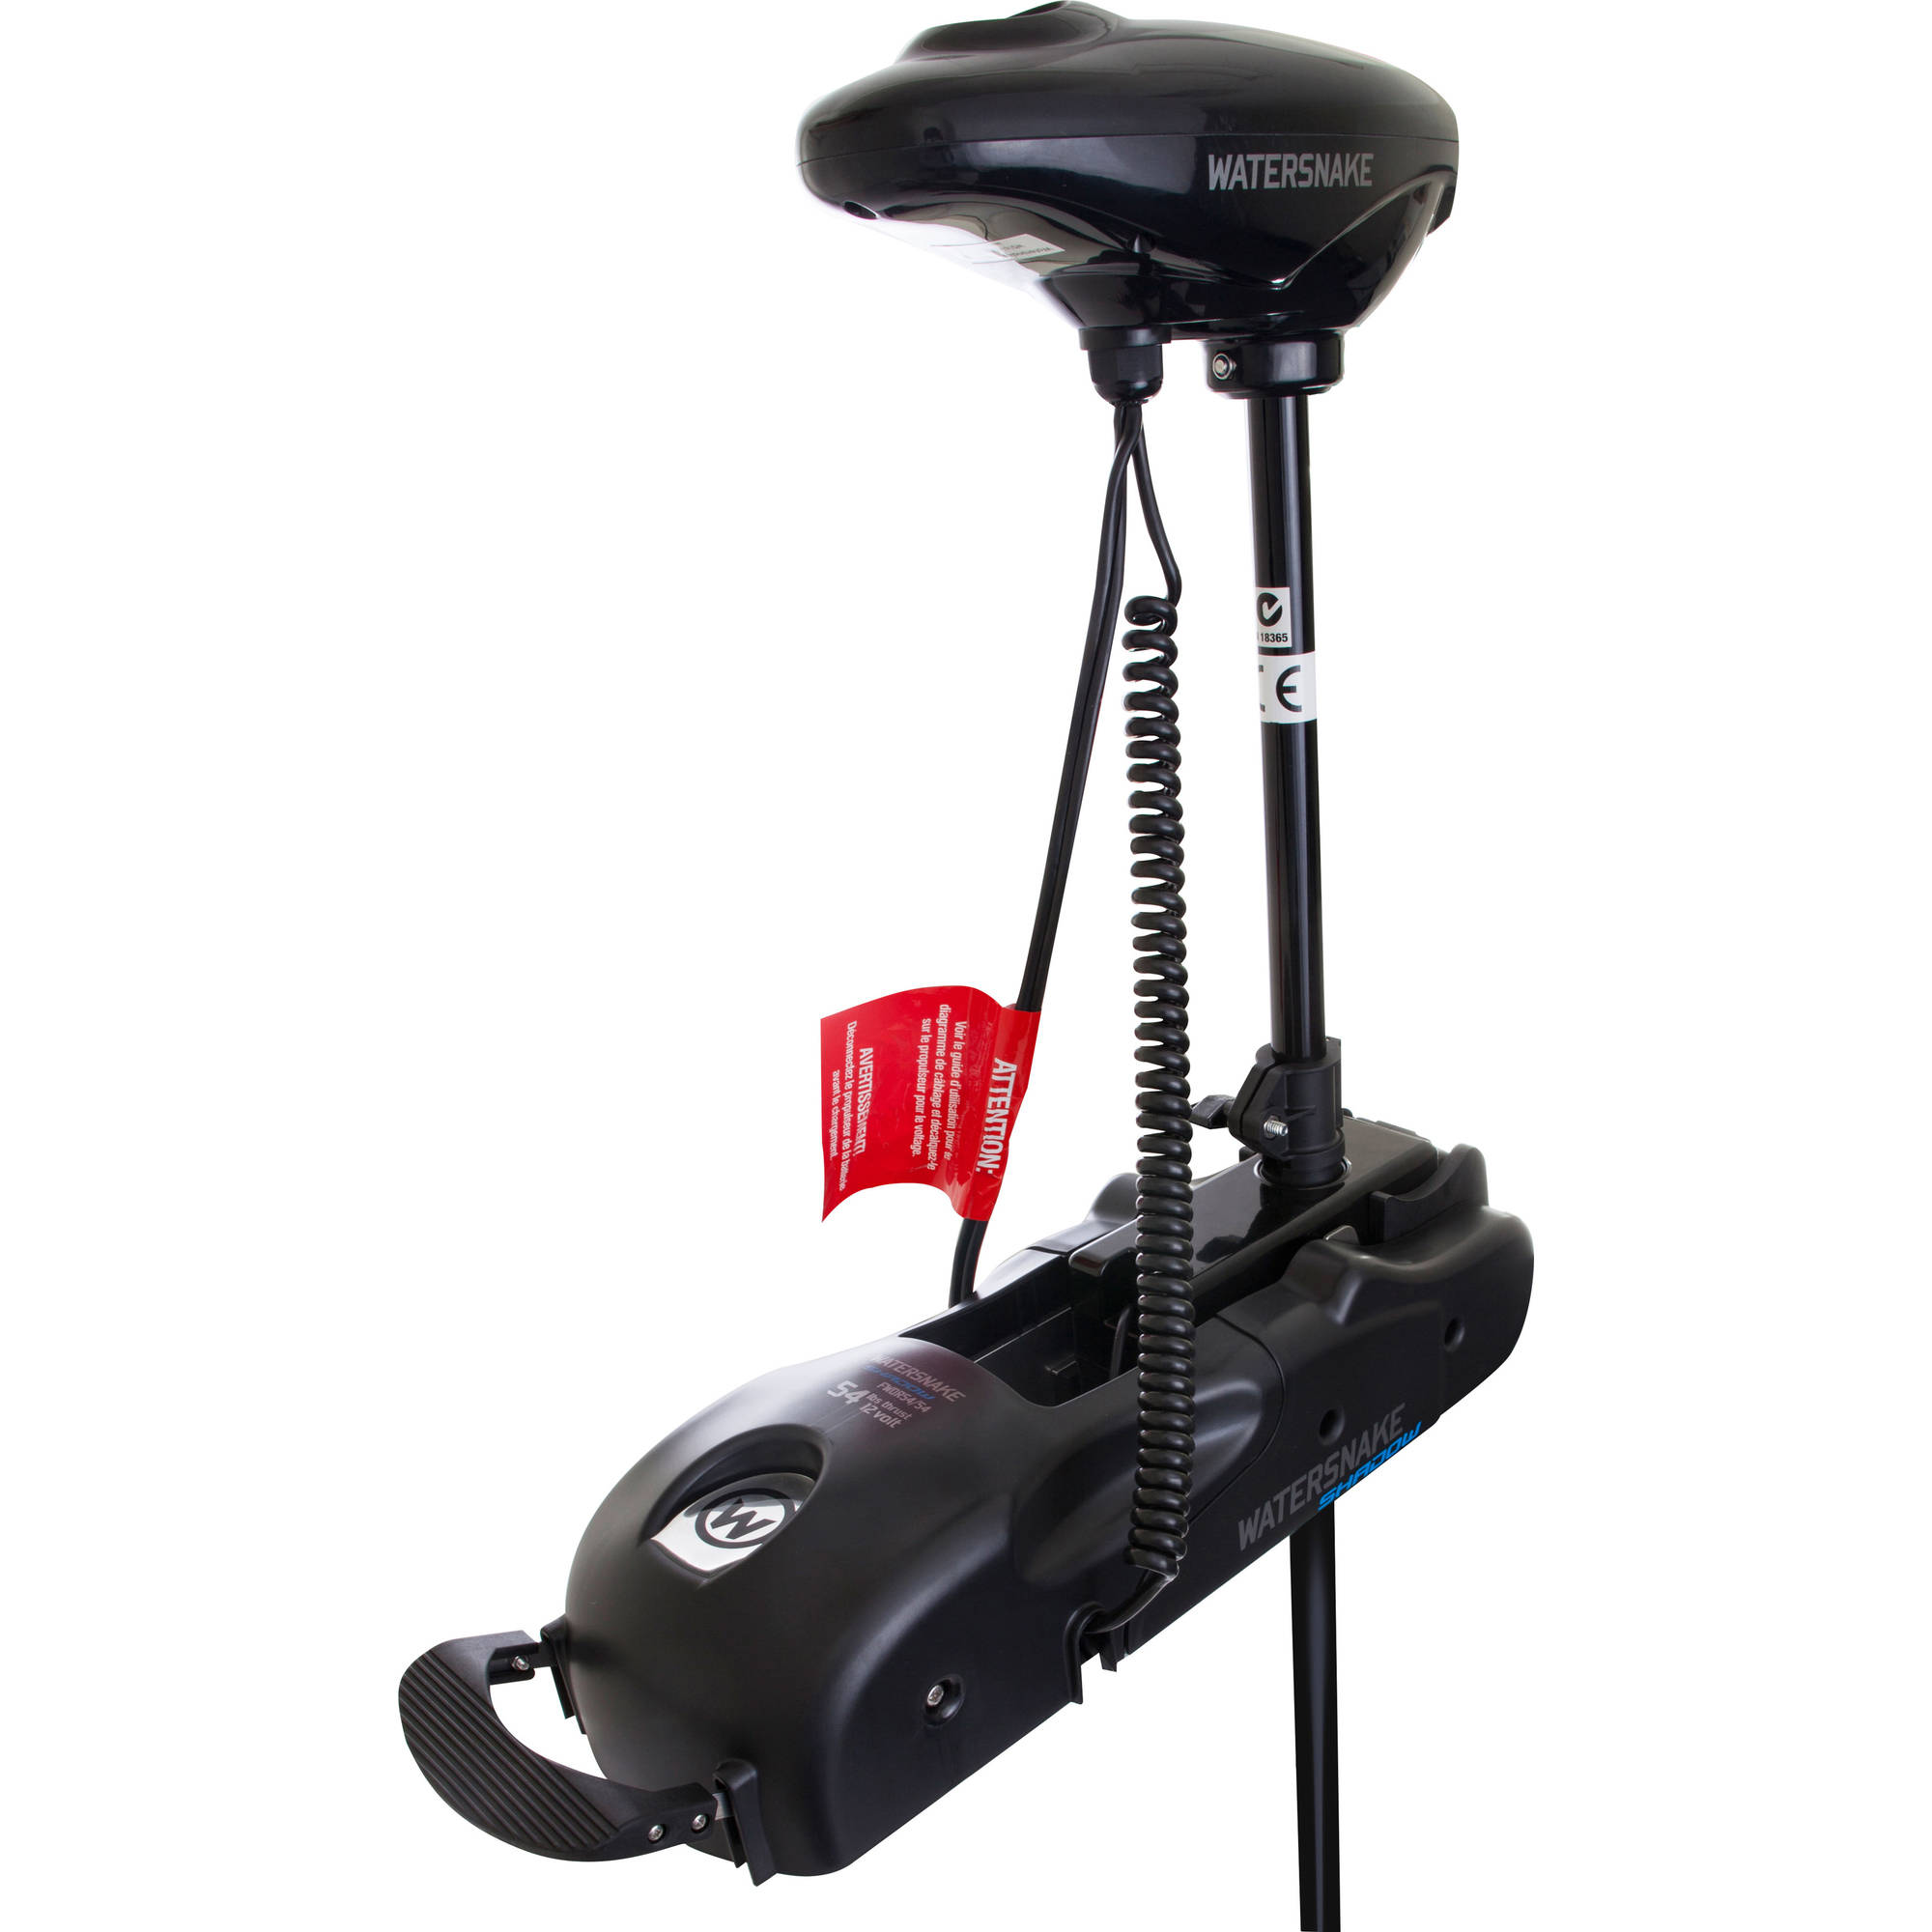 Watersnake Shadow Trolling Motor, FW 44/48 BM